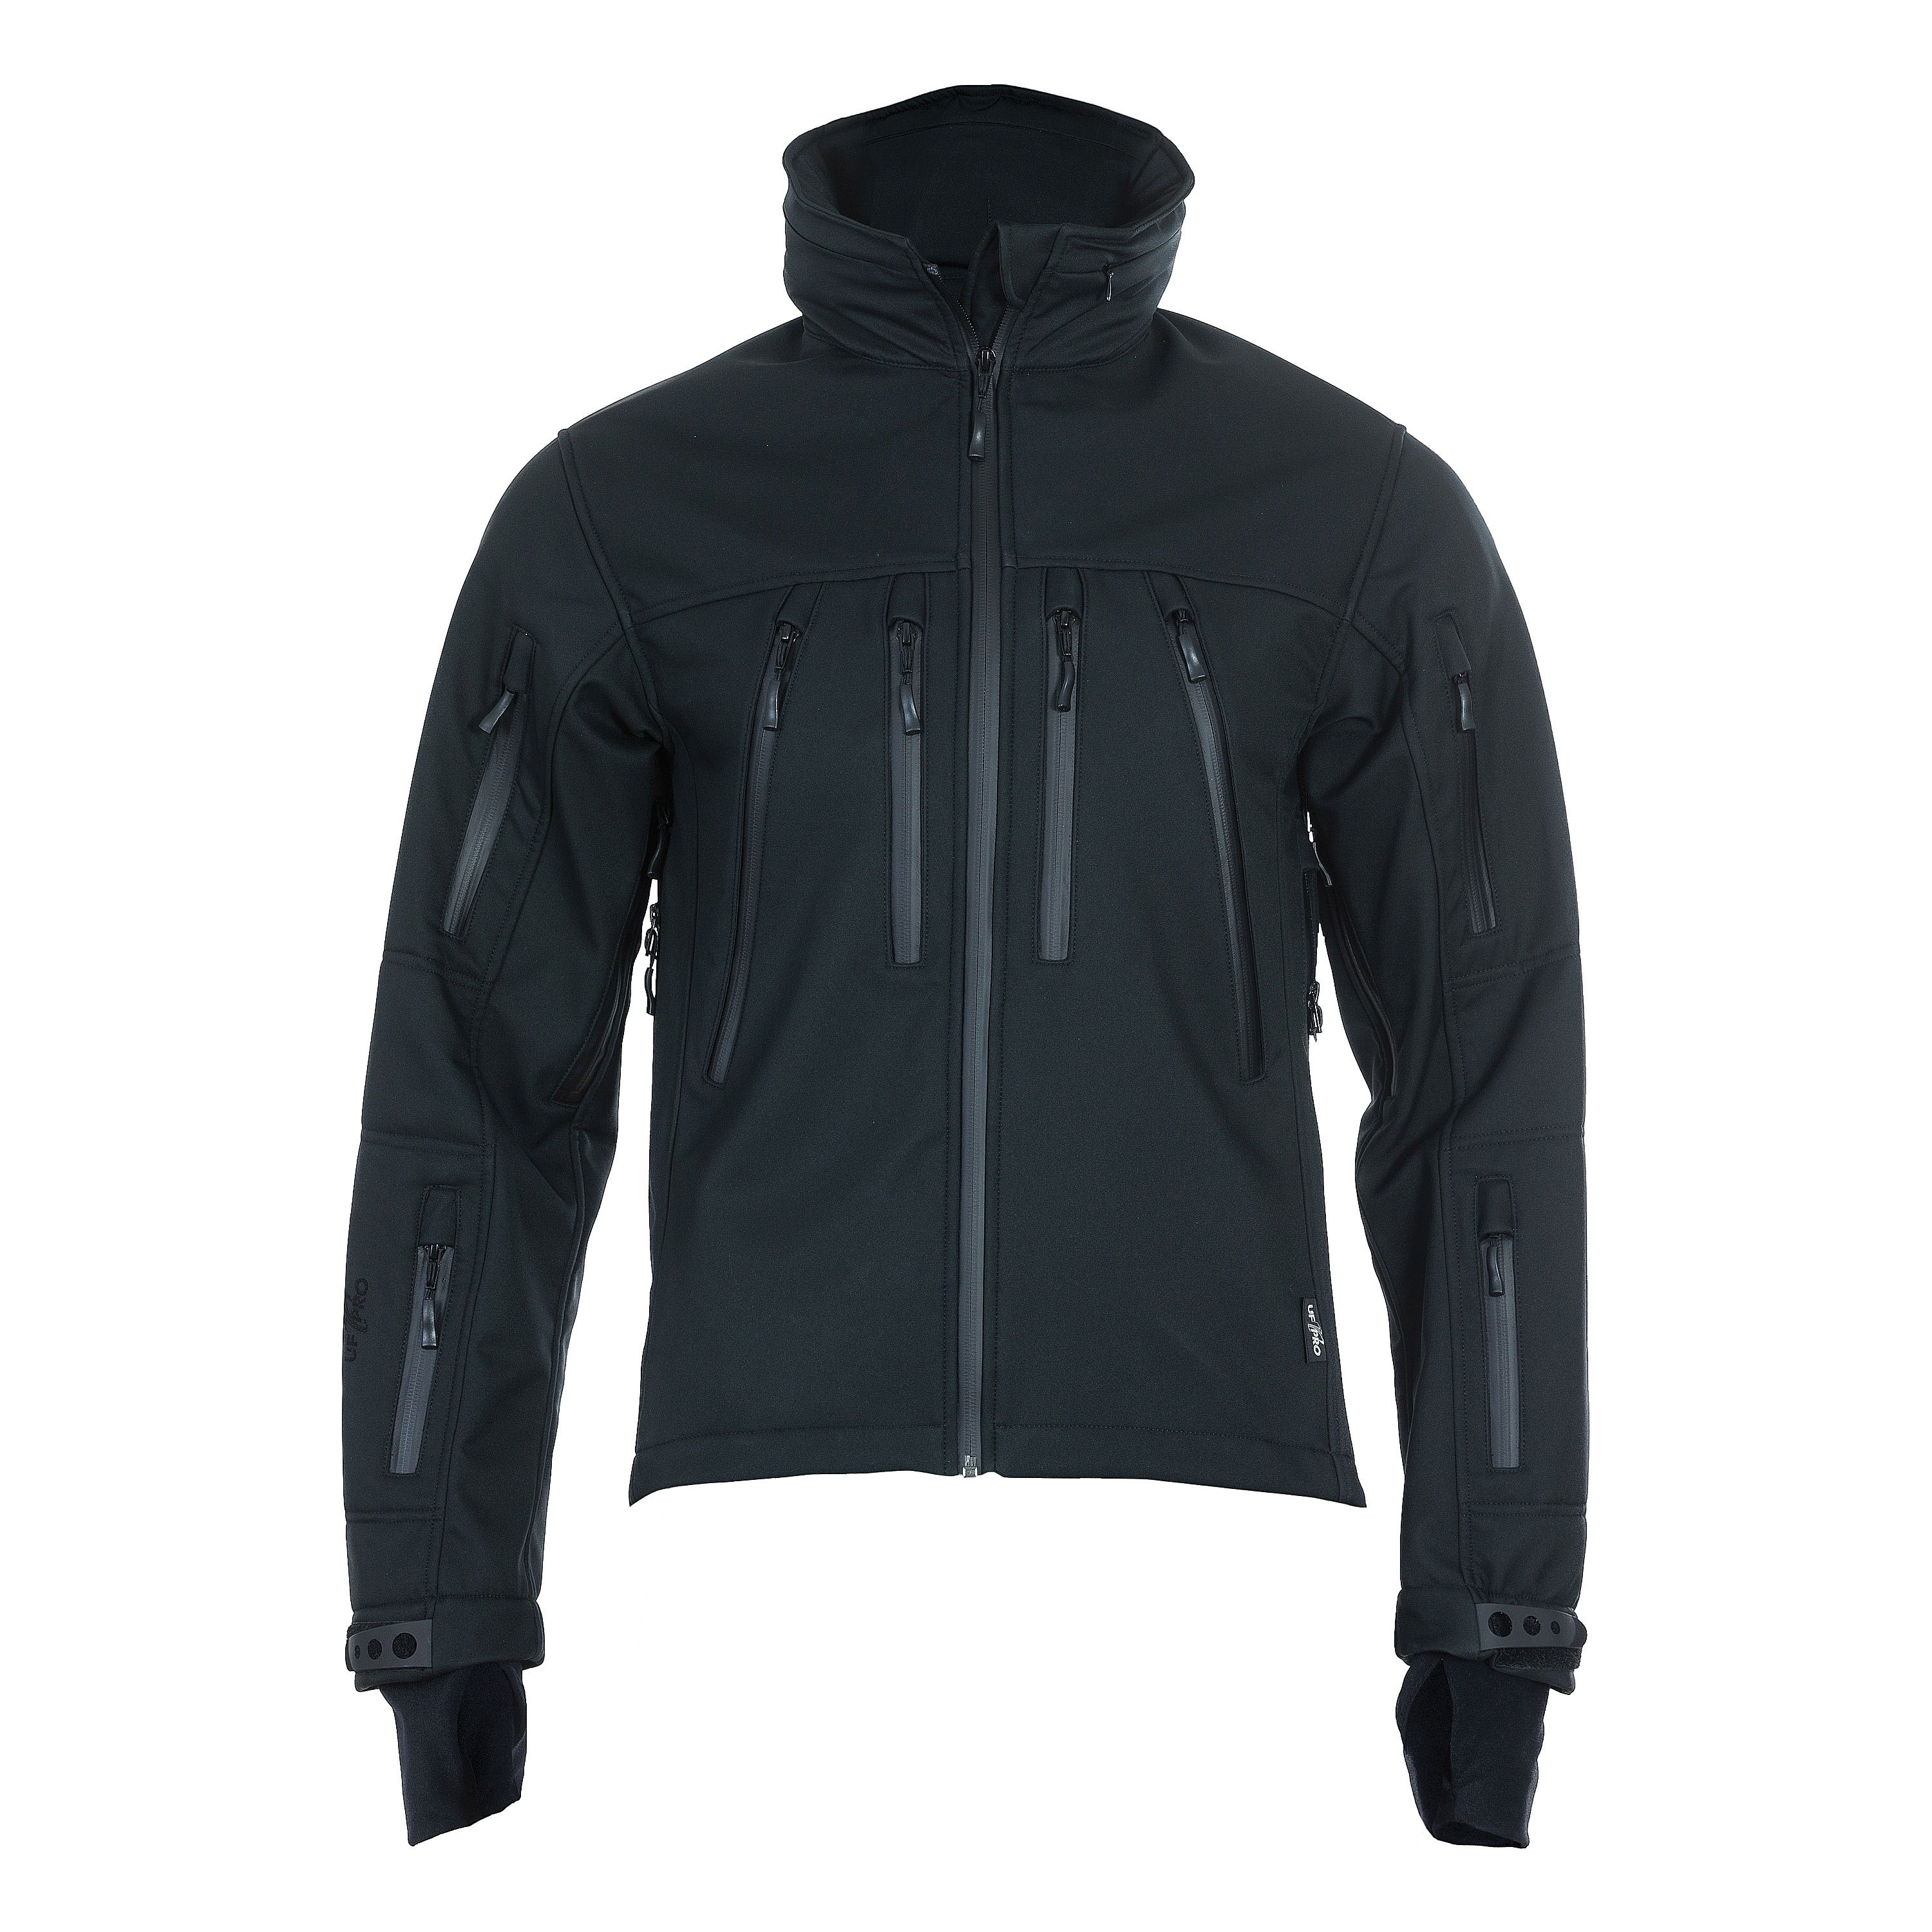 UF Pro Softshell Jacket Delta Eagle black